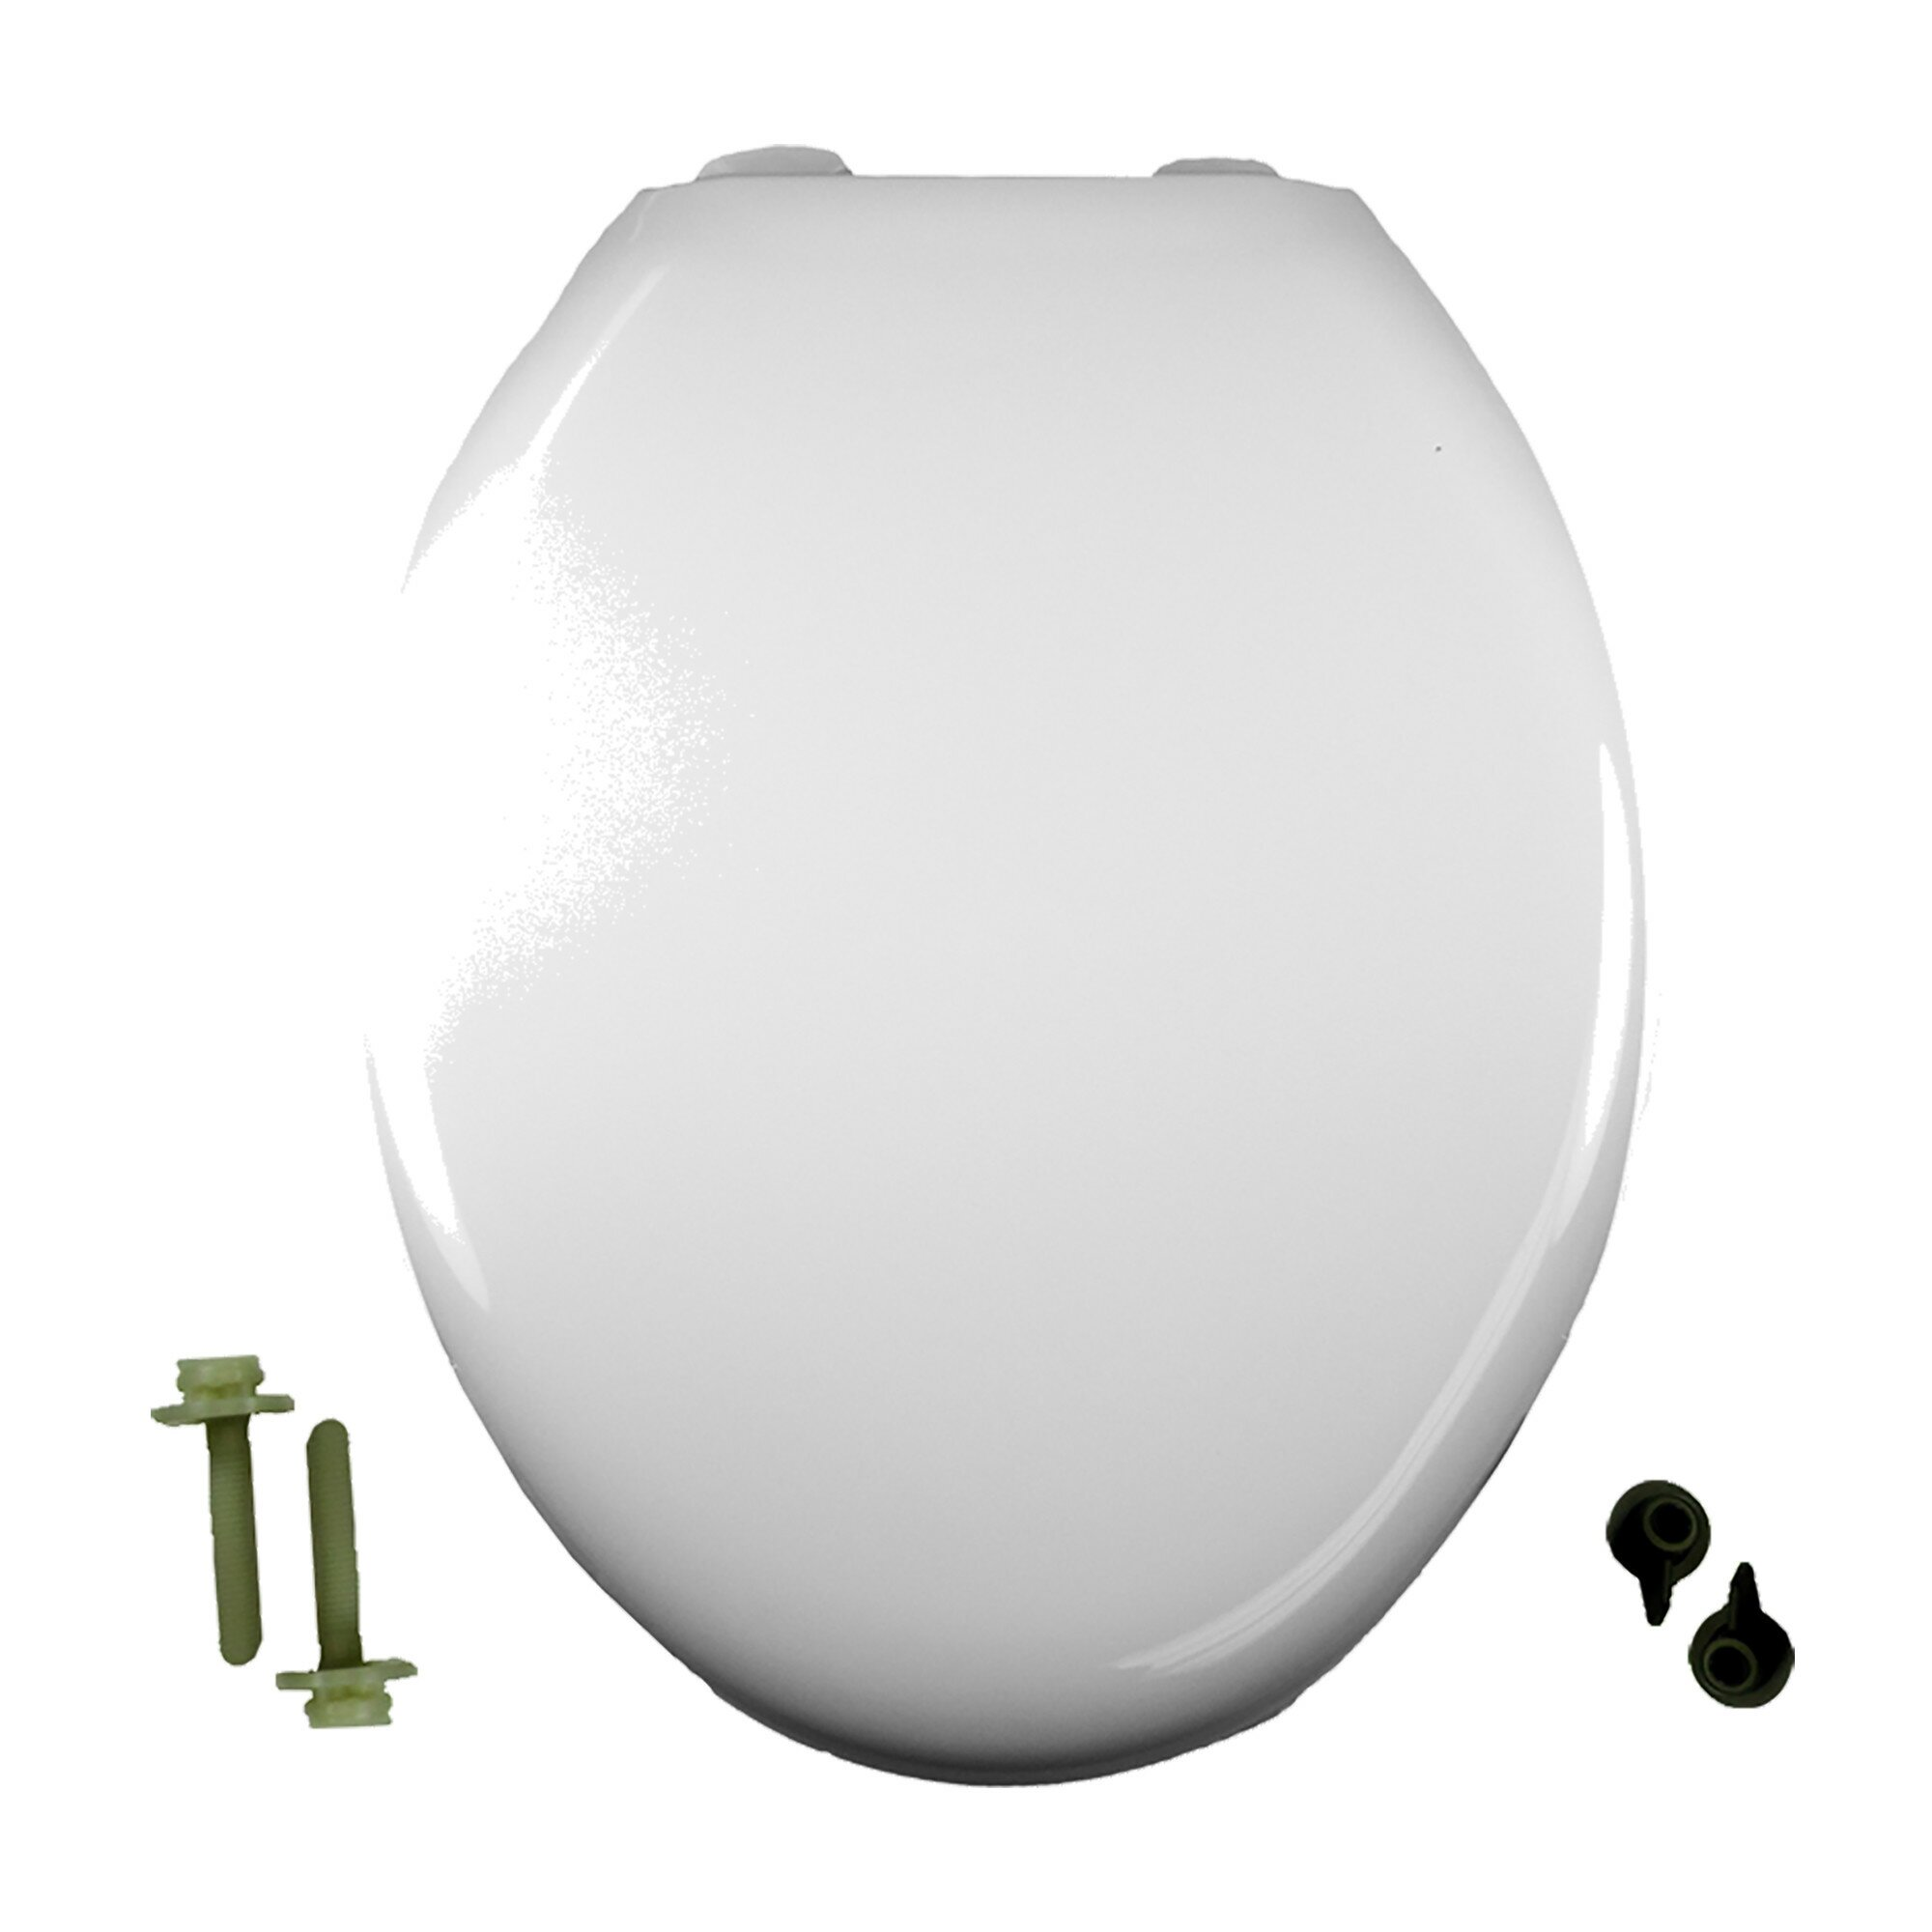 American Standard Champion Slow Close Elongated Toilet Seat With Cover